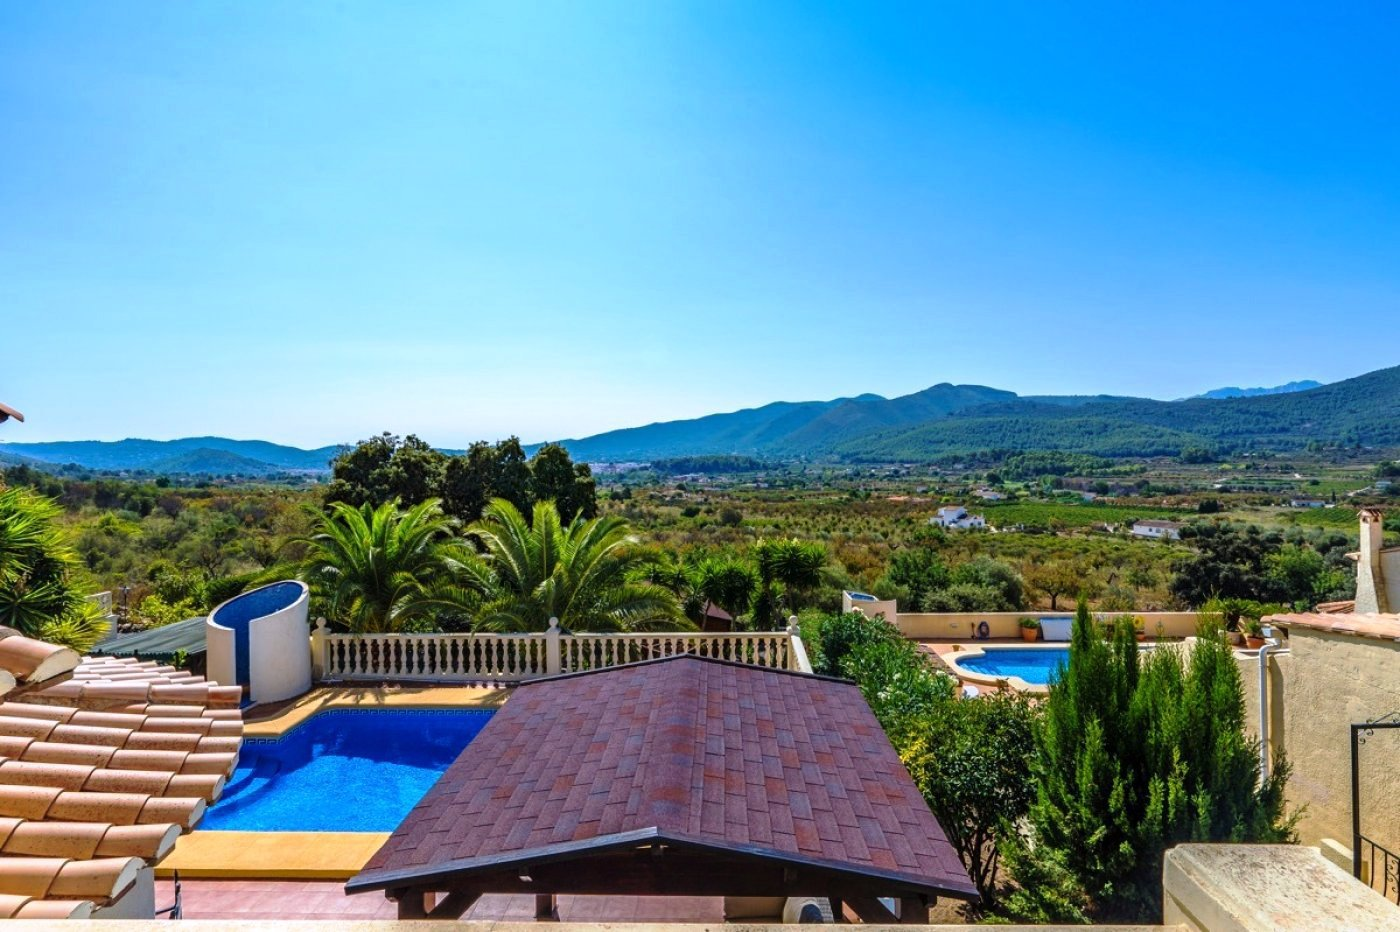 Detached villa with stunning views across the Jalon valley